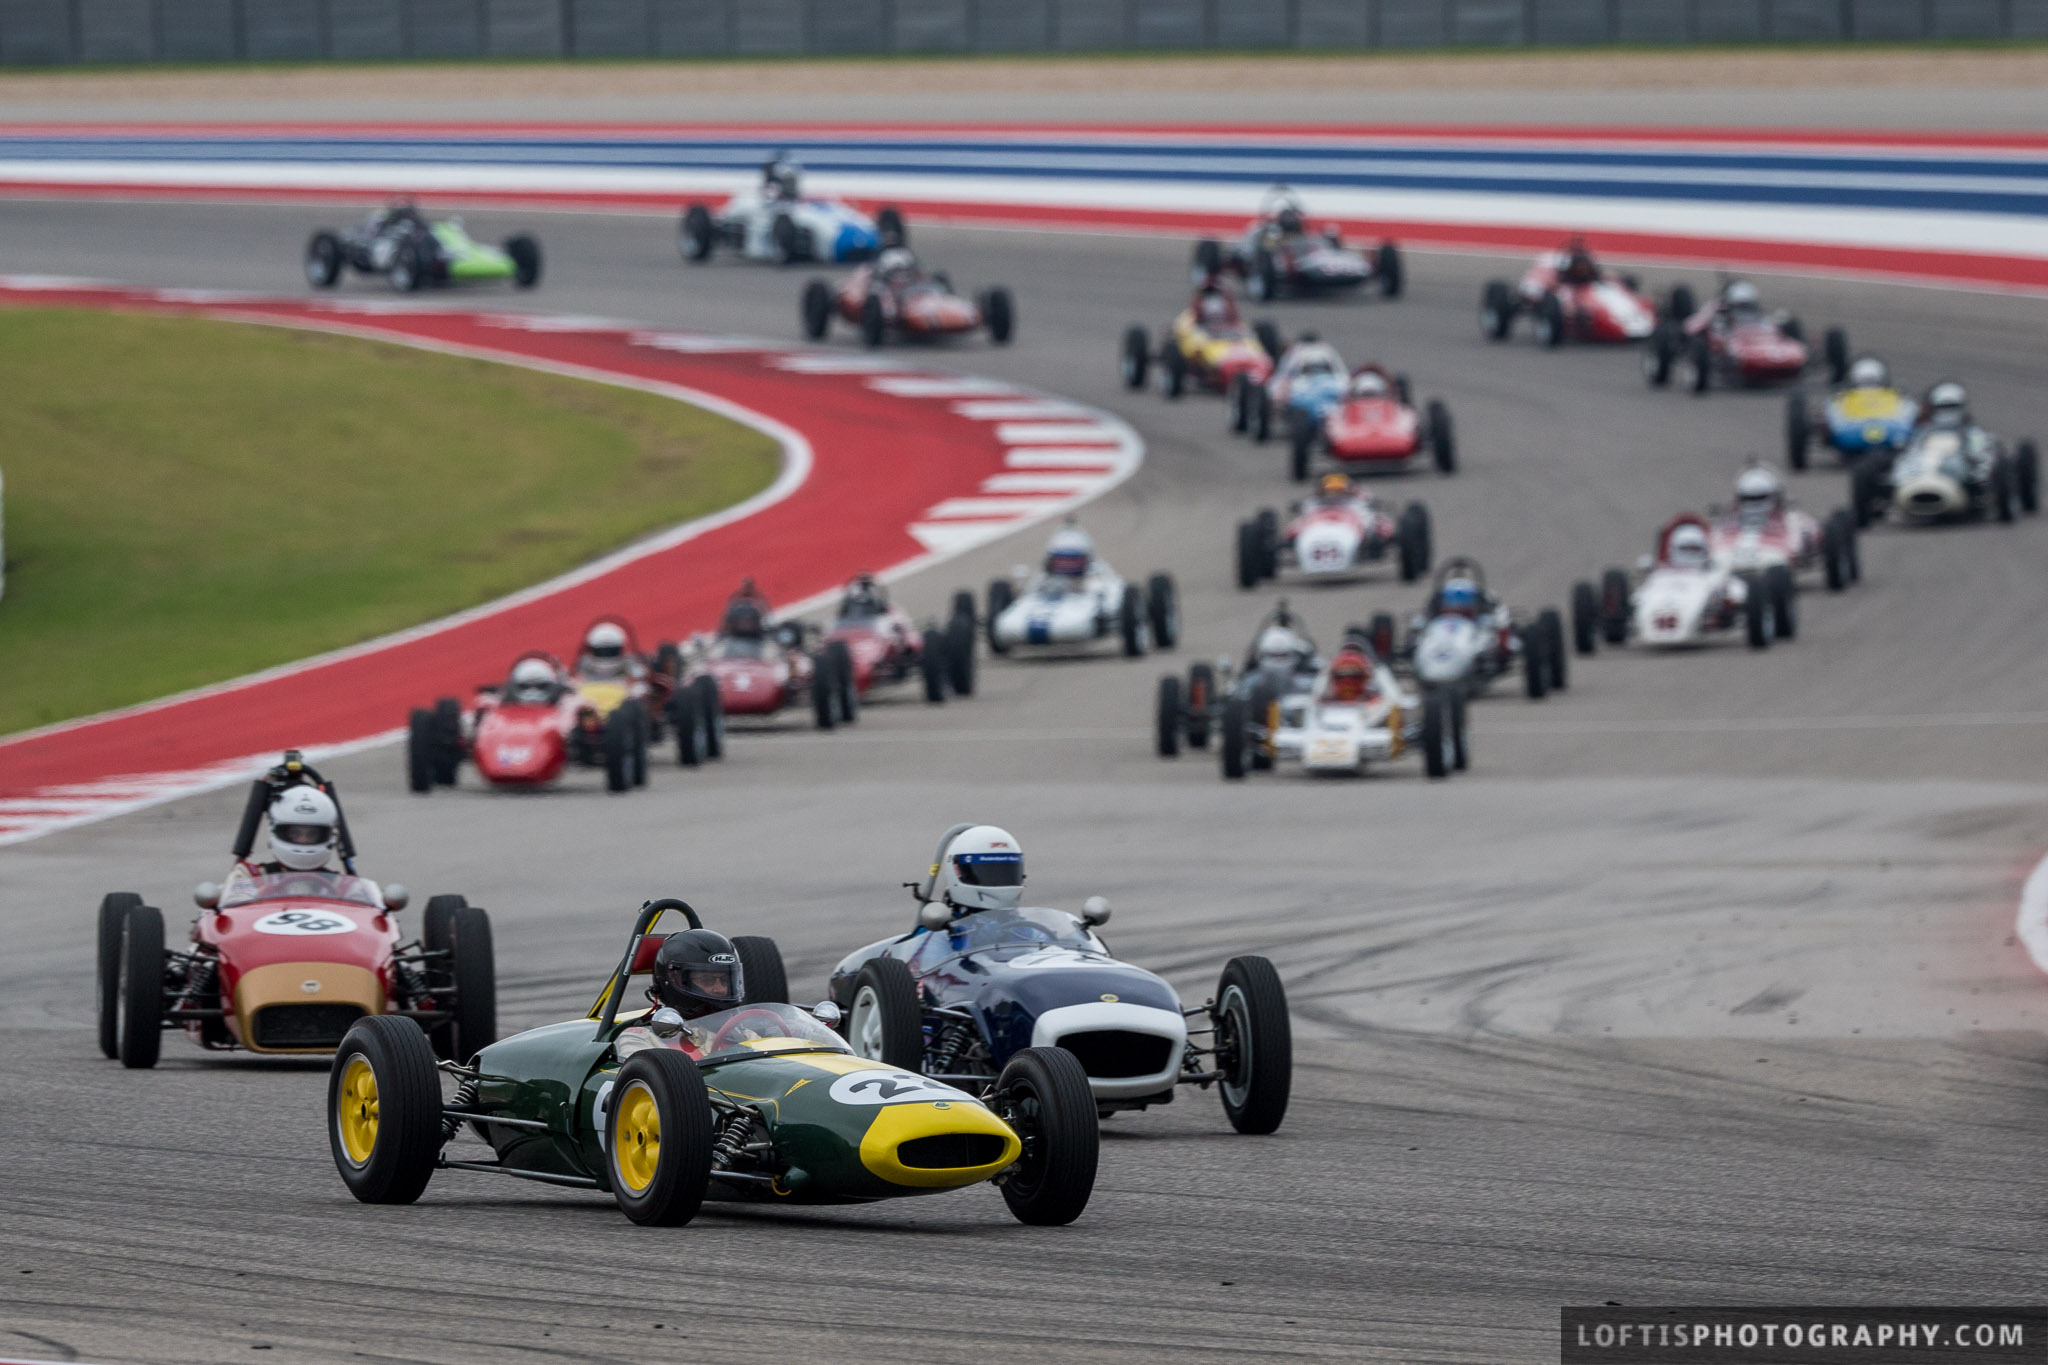 Sportscar Vintage Racing Association (SVRA) at Circuit of the Americas